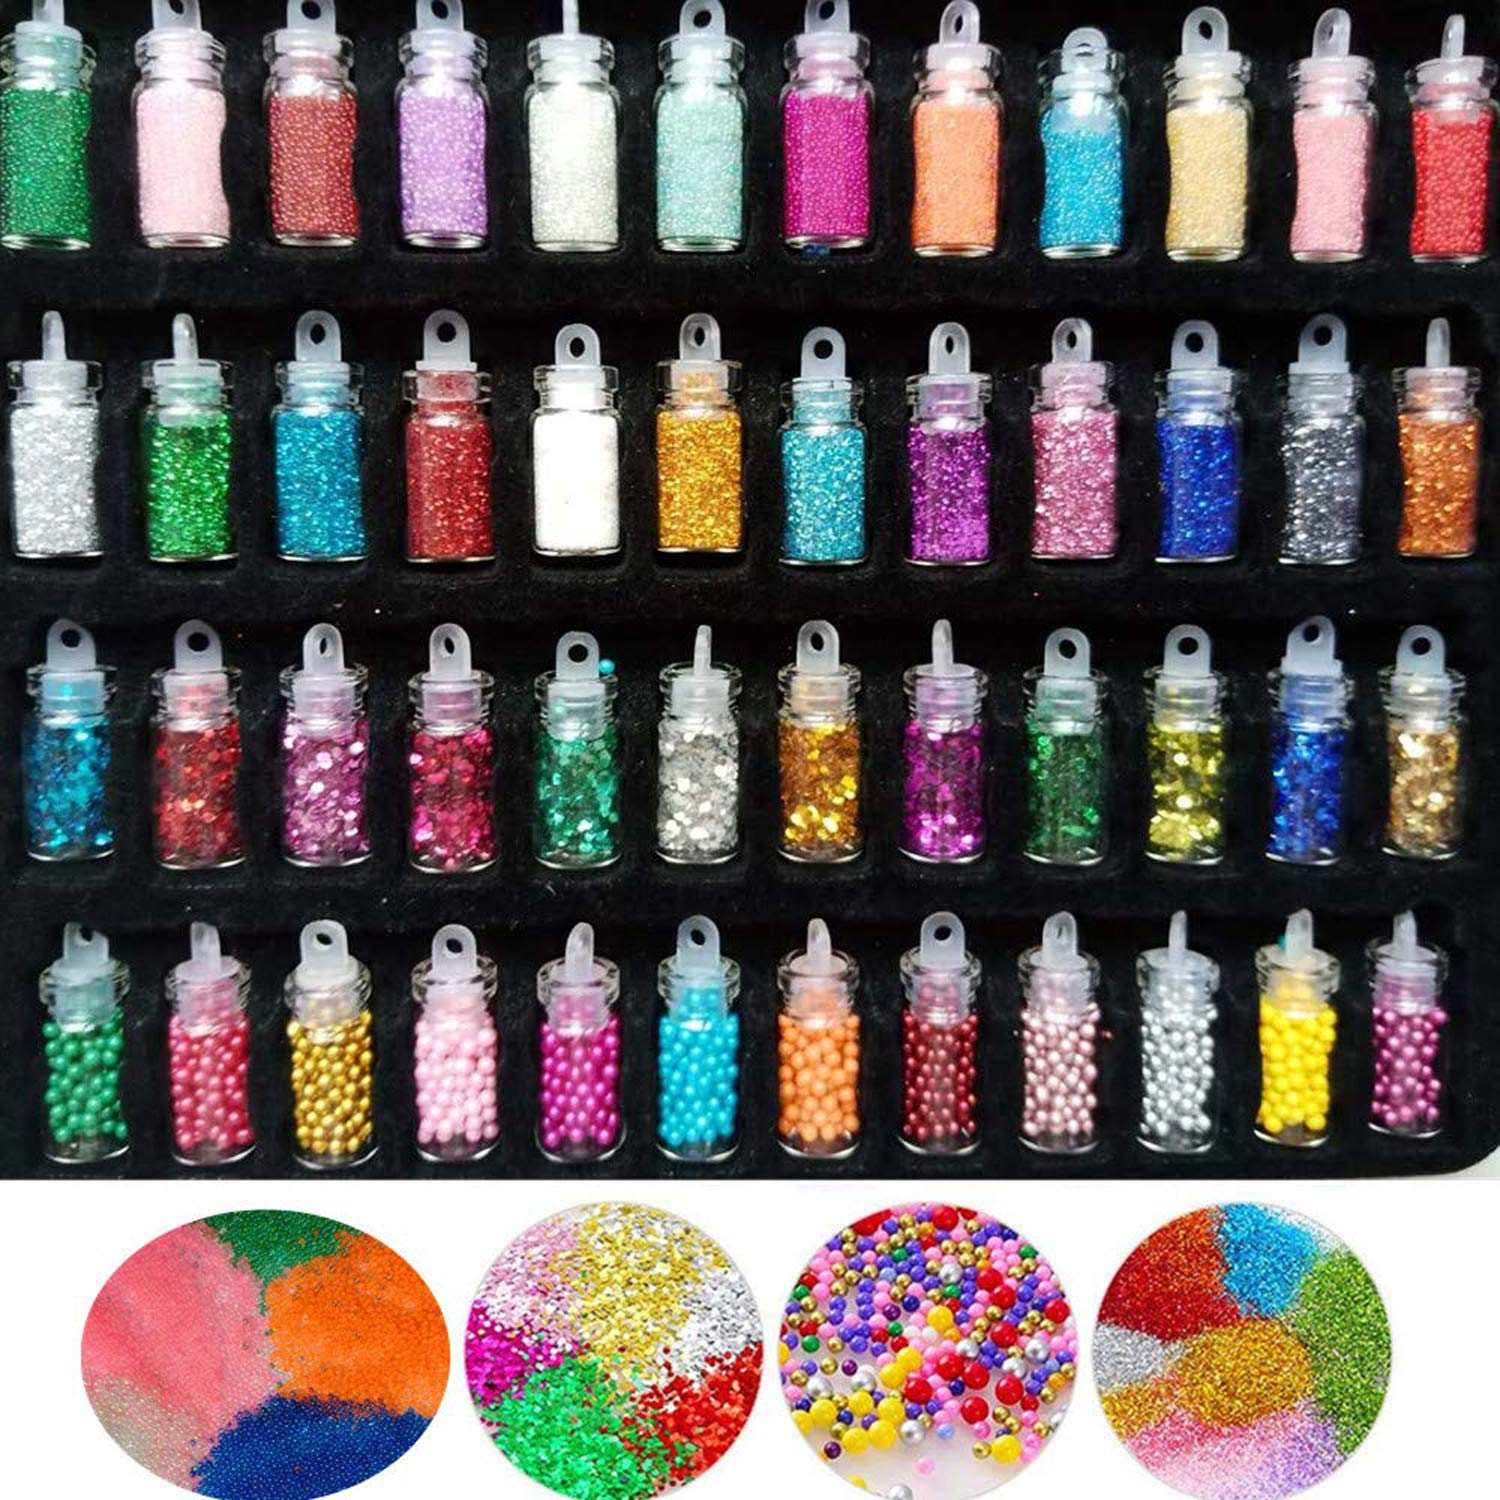 Mordely 138 pack Slime Making Kits Supplies,Foam Balls,Glitter Shake Jars,Fishbowl Beads,Moving eyes,Fruit Slices Sugar Papers,Slime Containers,ABS Pearls,Slime animal charms for Girls and Boys Slime 01